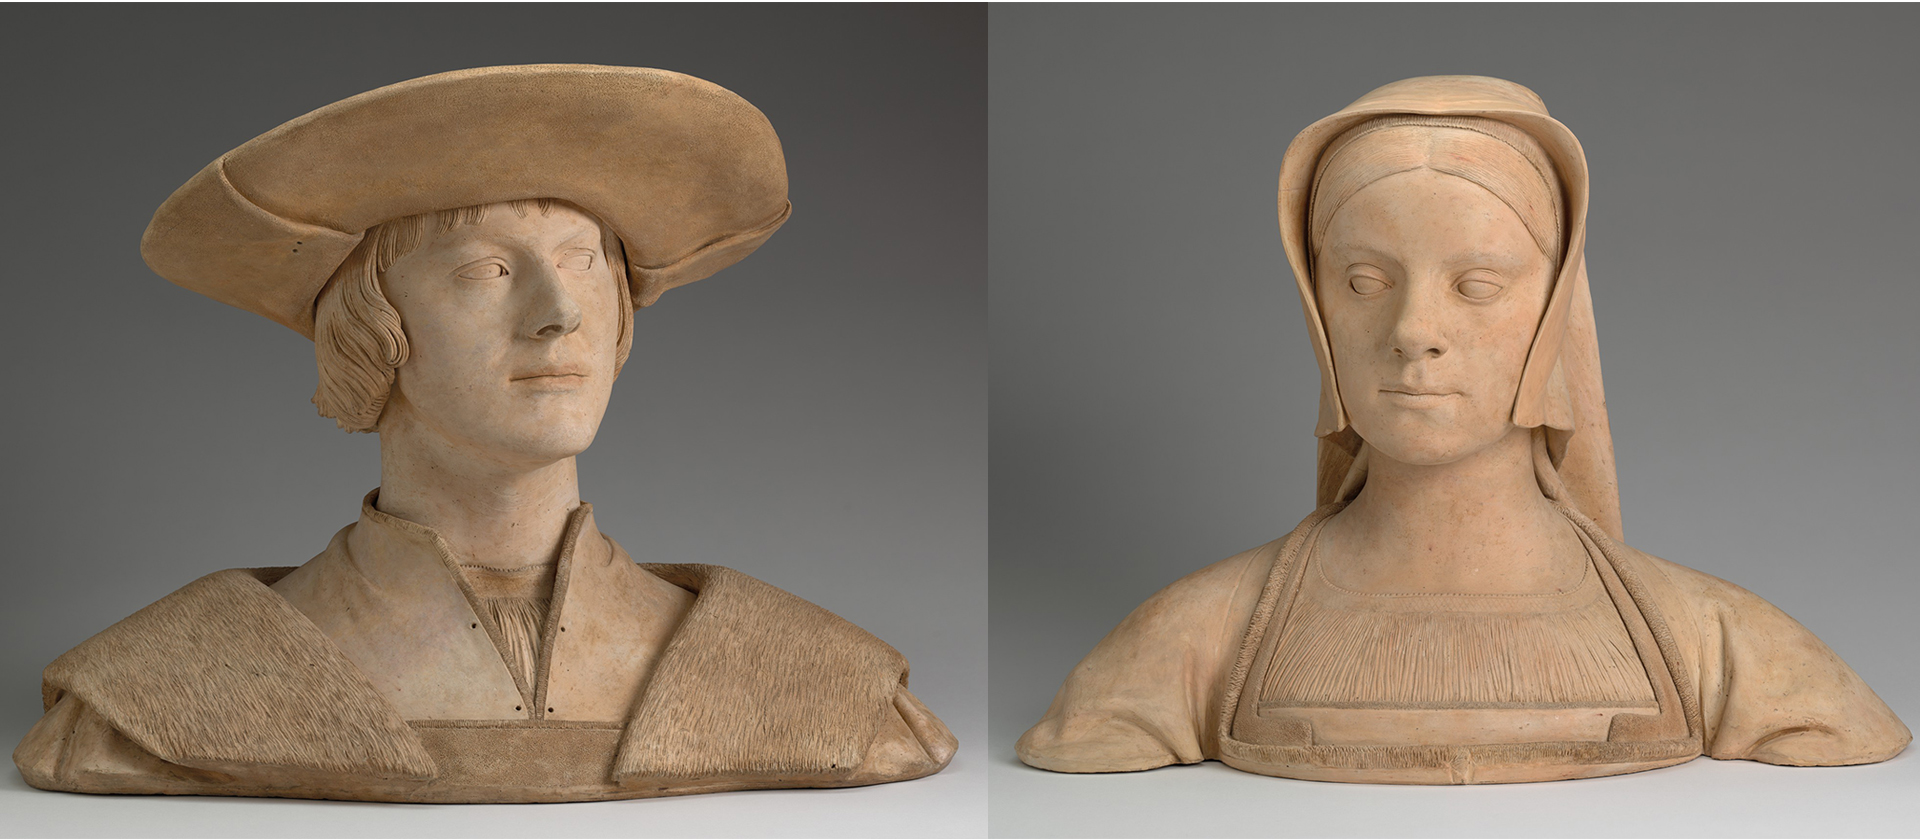 Authorship Rediscovered: New Evidence about Harvard's Pair of Renaissance Terracotta Busts